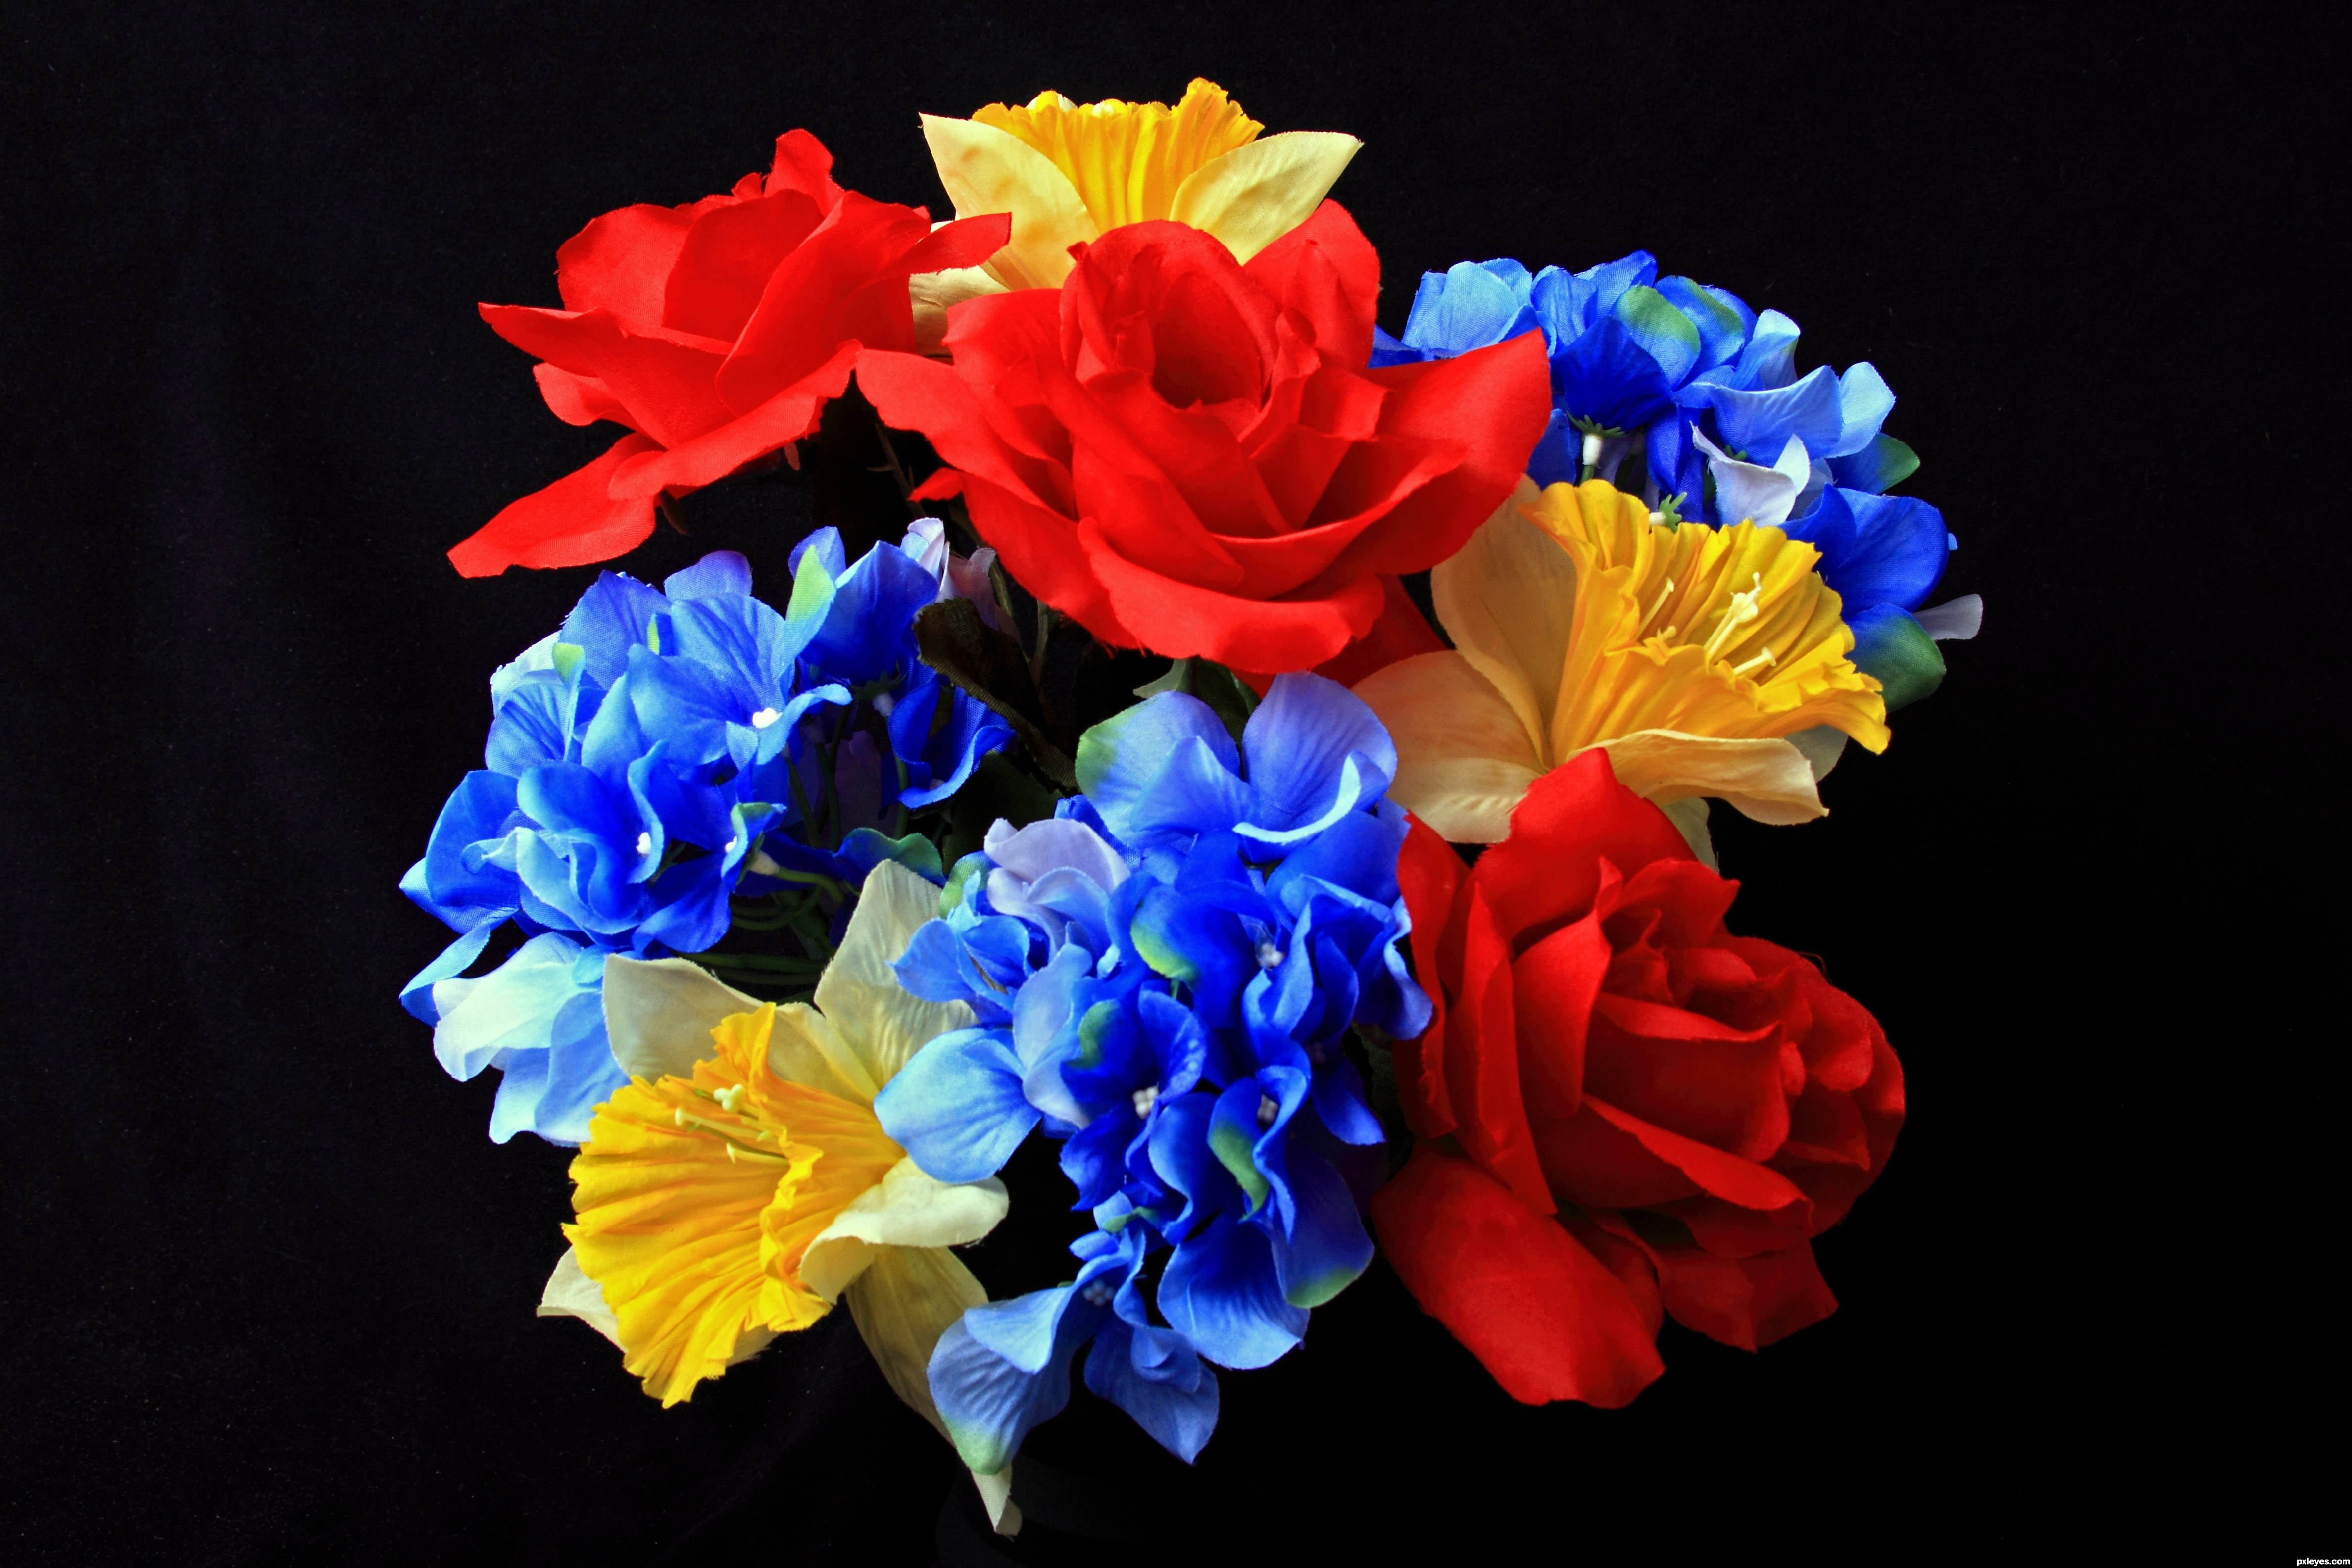 Flowers picture, by UncleJimmy for: primary colors photography ...